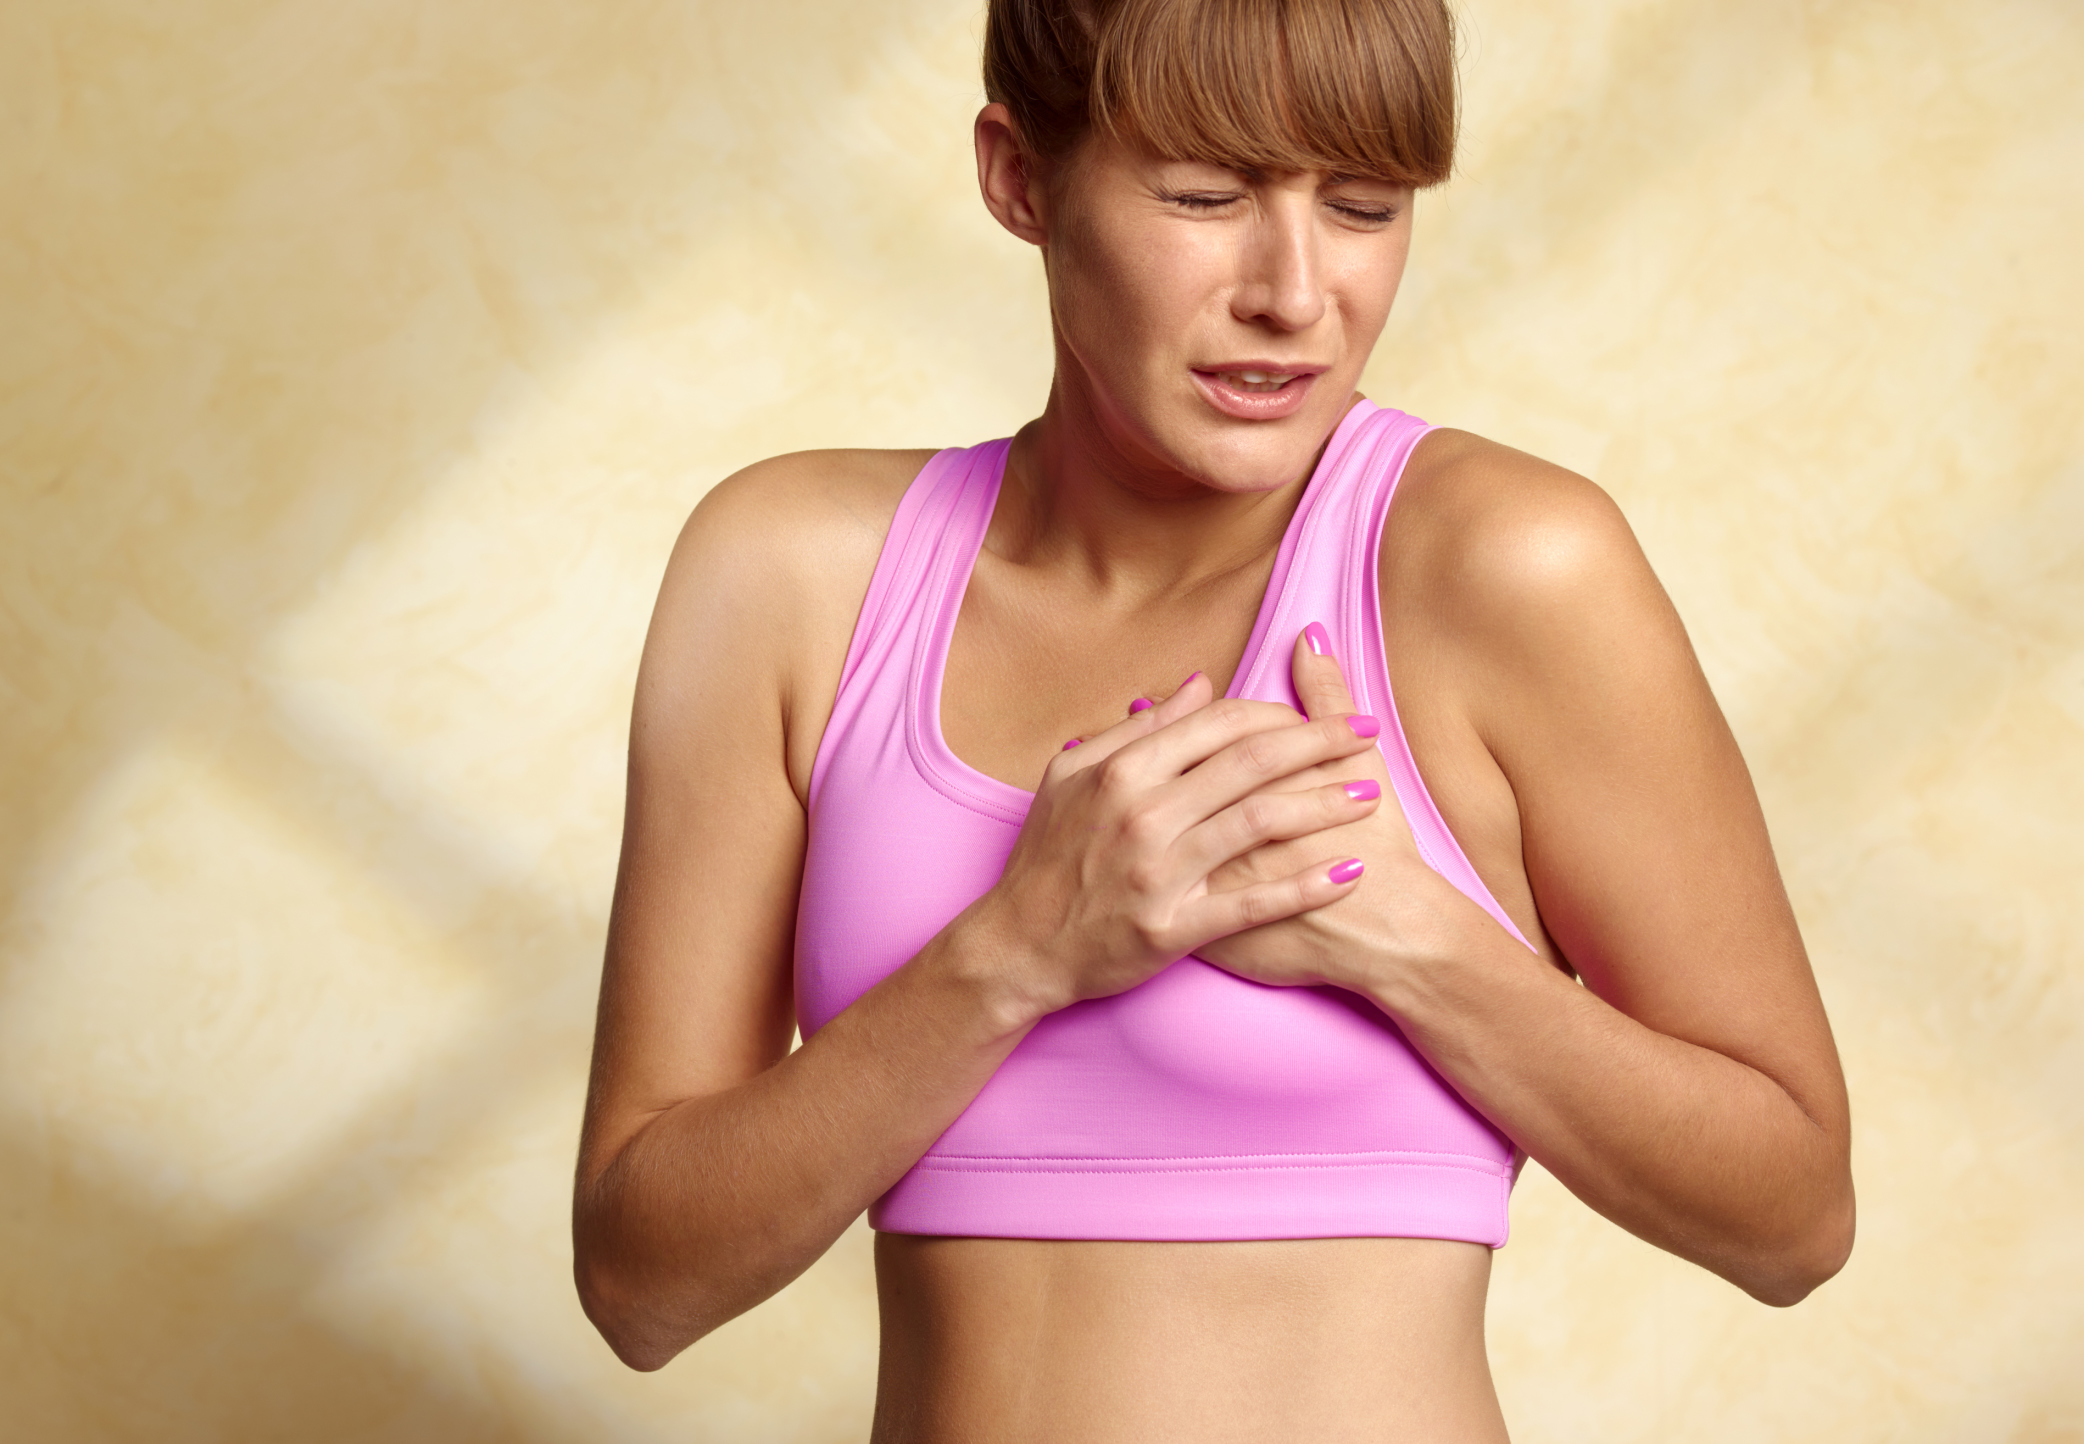 Why Am I Getting Heartburn When I Work Out? | LIVESTRONG.COM